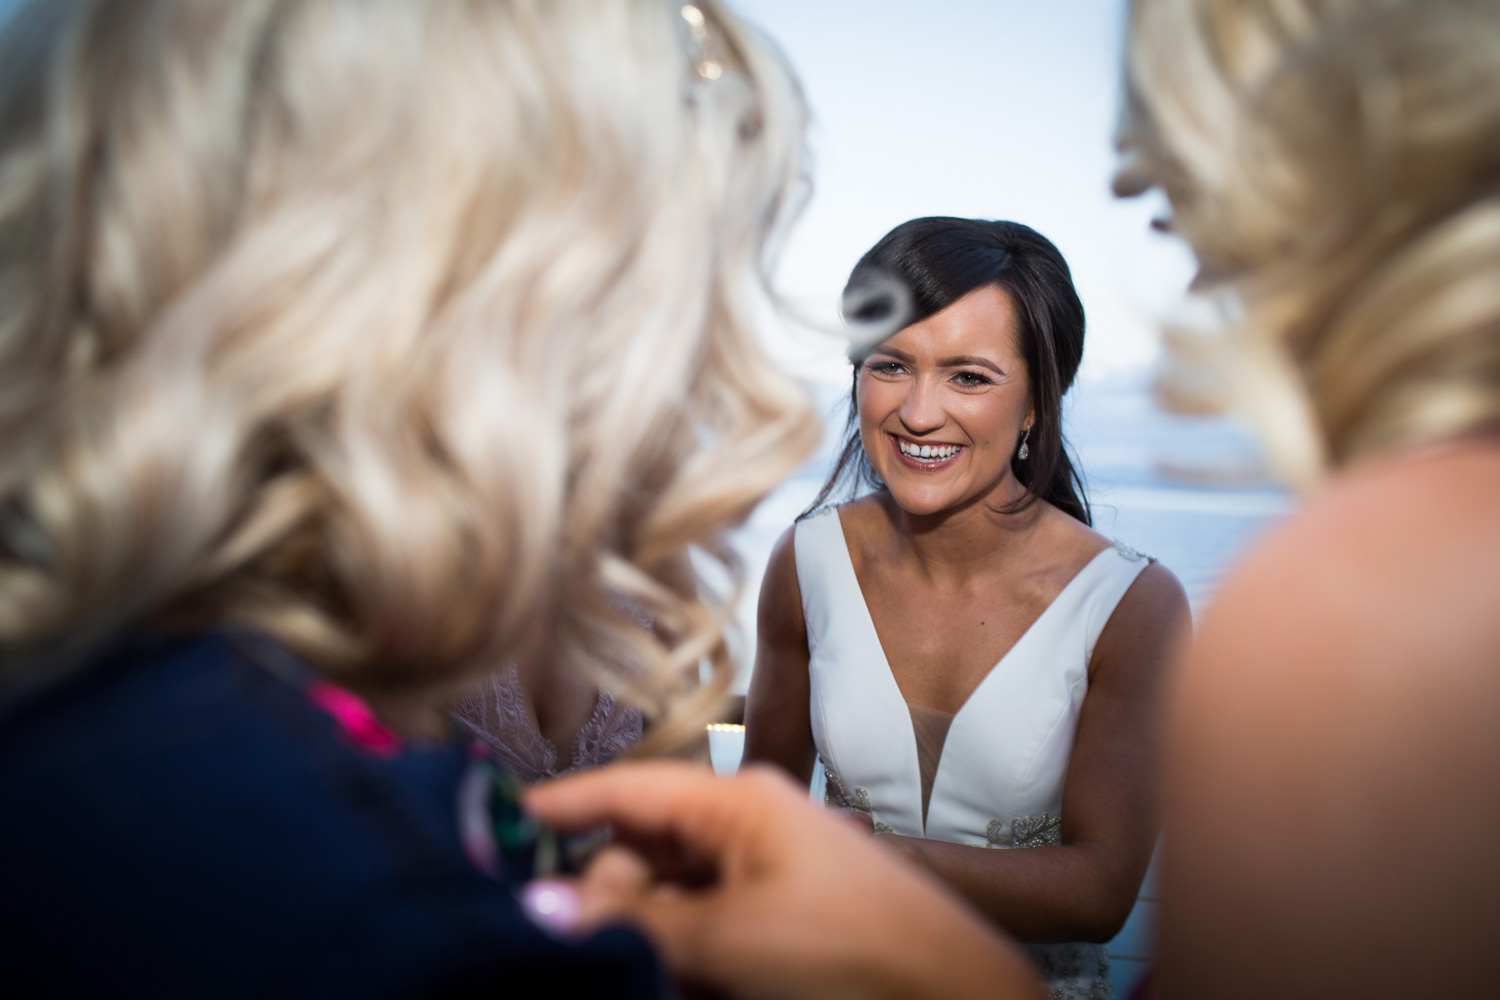 Mark_Barnes_Northern_Ireland_wedding_photographer_redcastle_hotel_Donegal_Wedding_photography_Donegal_wedding_photographer-53.jpg